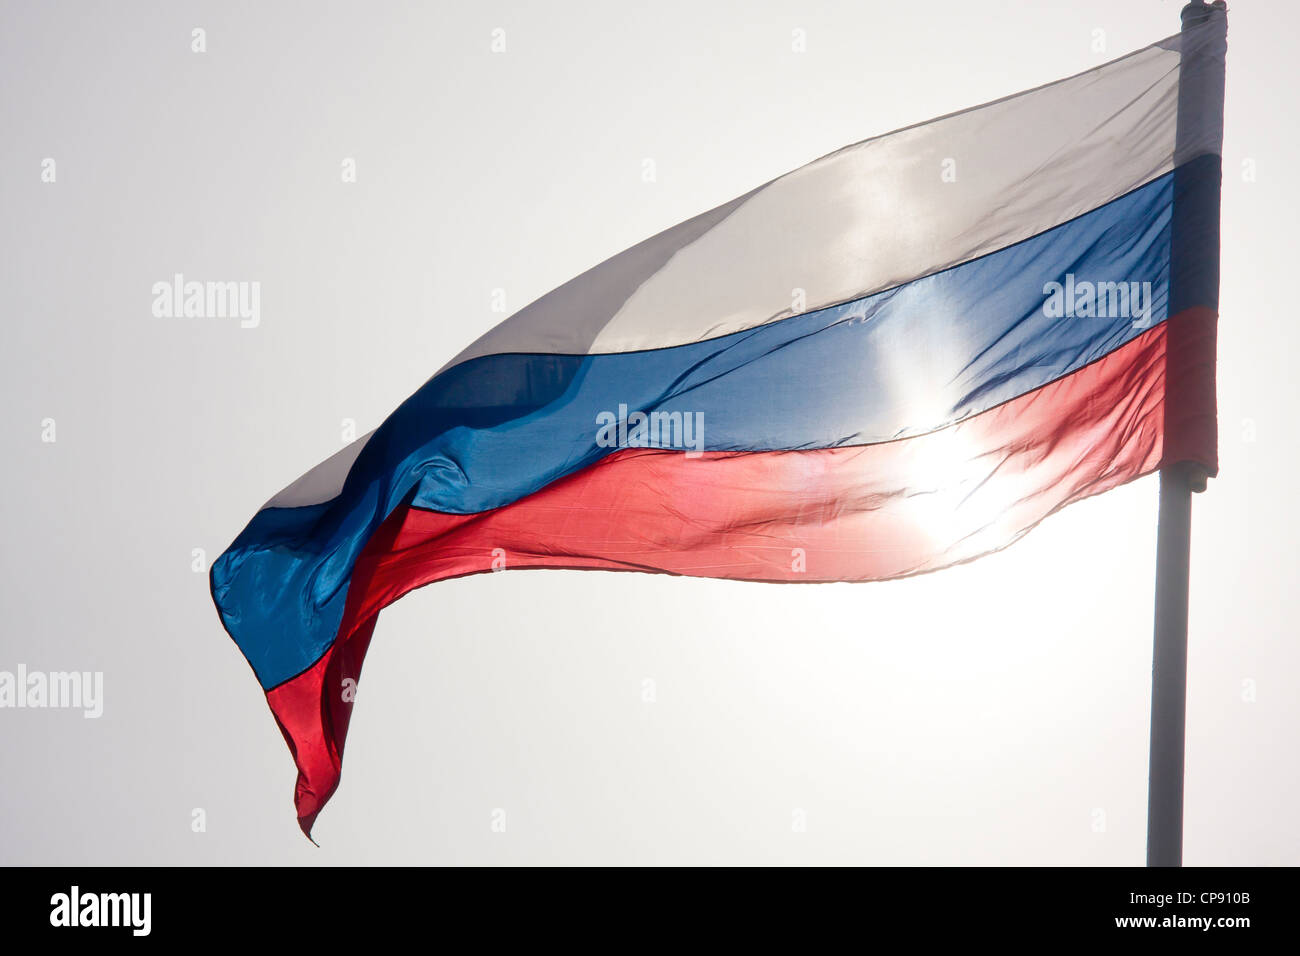 The flag of the Russian Federation, russian flag,  tricolor flag - Stock Image